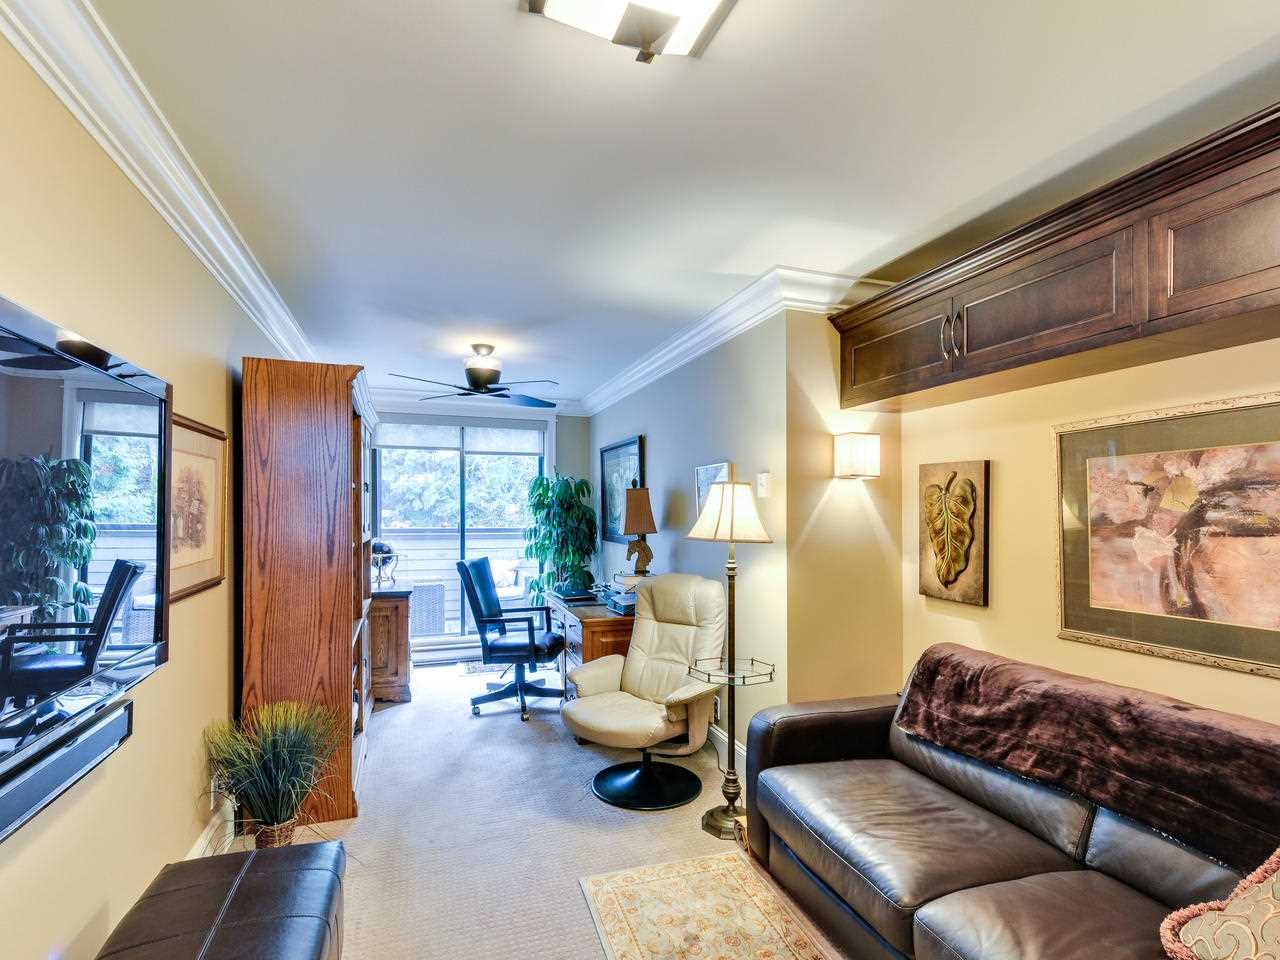 11 14025 NICO WYND PLACE - Elgin Chantrell Apartment/Condo for sale, 2 Bedrooms (R2369861) - #14